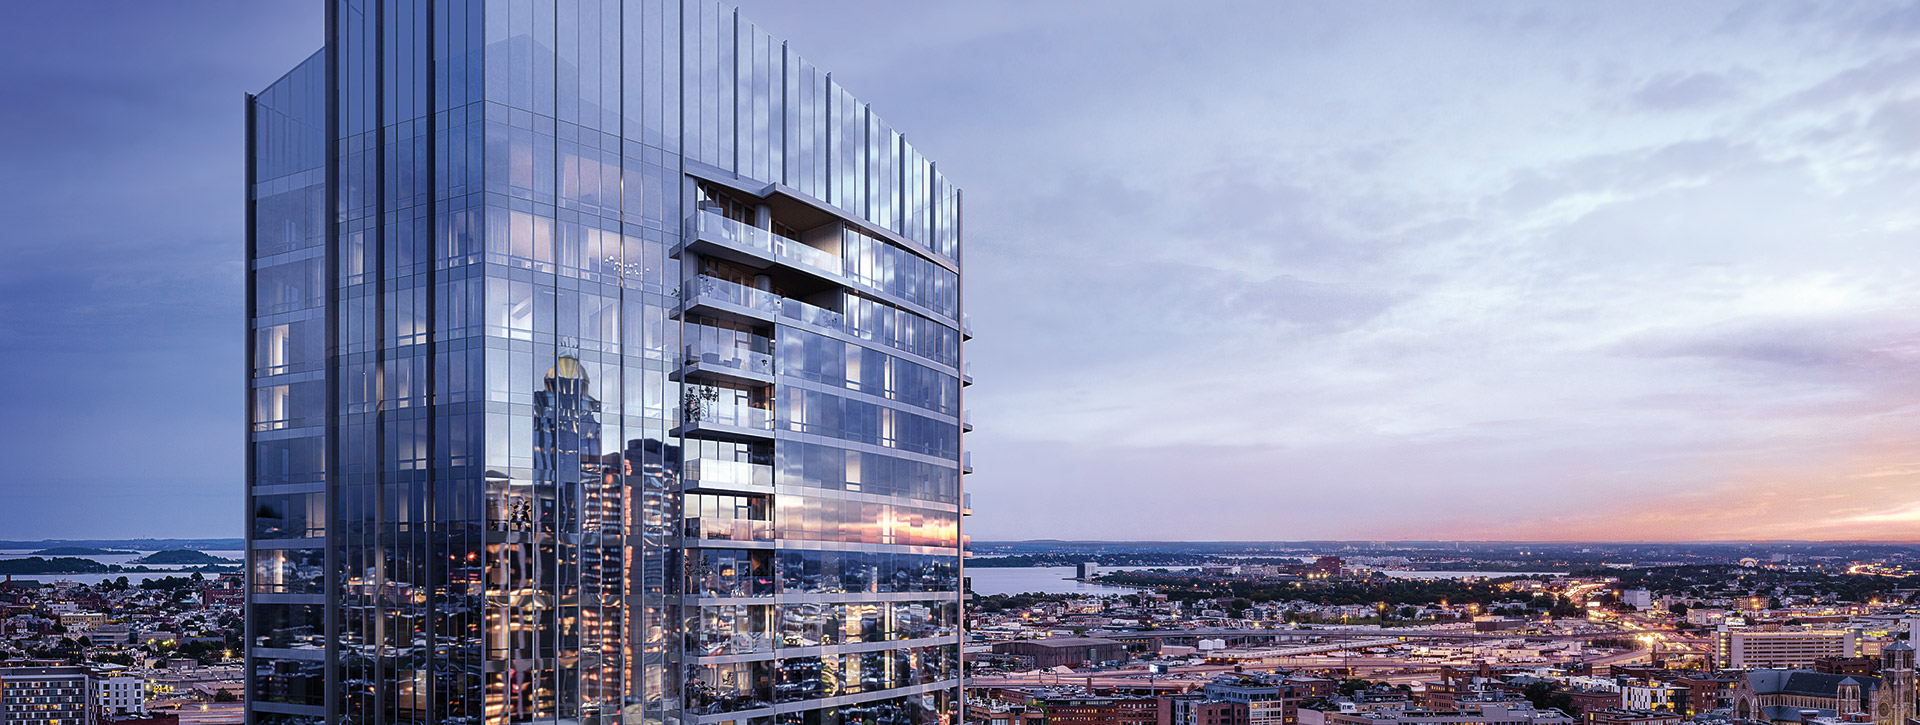 Raffles Boston Back Bay Hotel Residences Scheduled To Open In 2021 Will Be The First Mixed Use Property North America And Promises A Welcoming